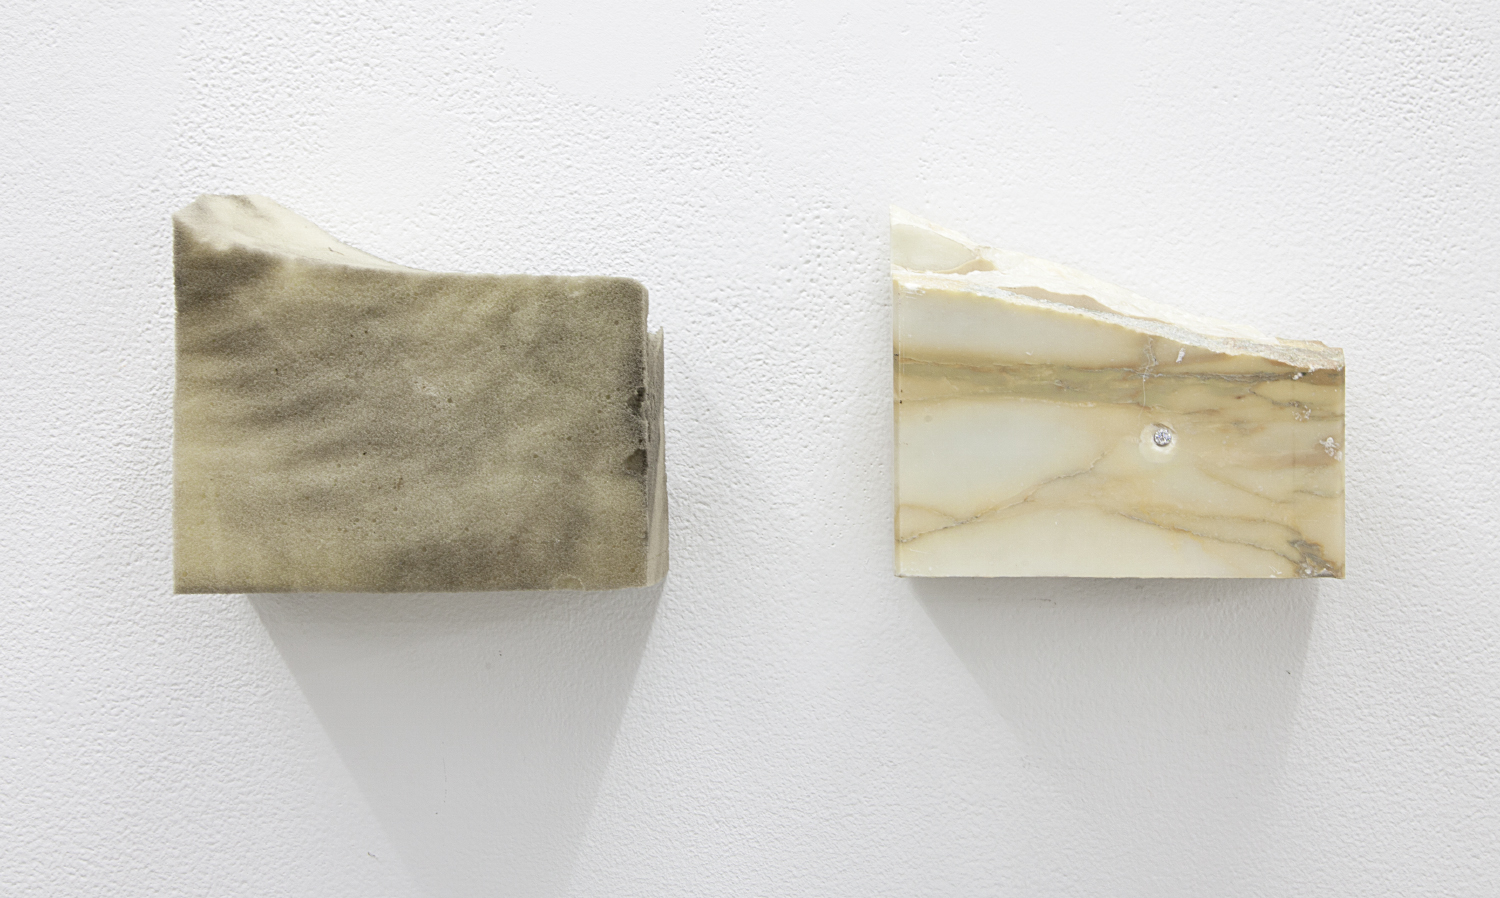 Moire , 2015 Marble, found foam, and manufactured diamond using Bideford black pigment 5 x 14.4 x 3 inches